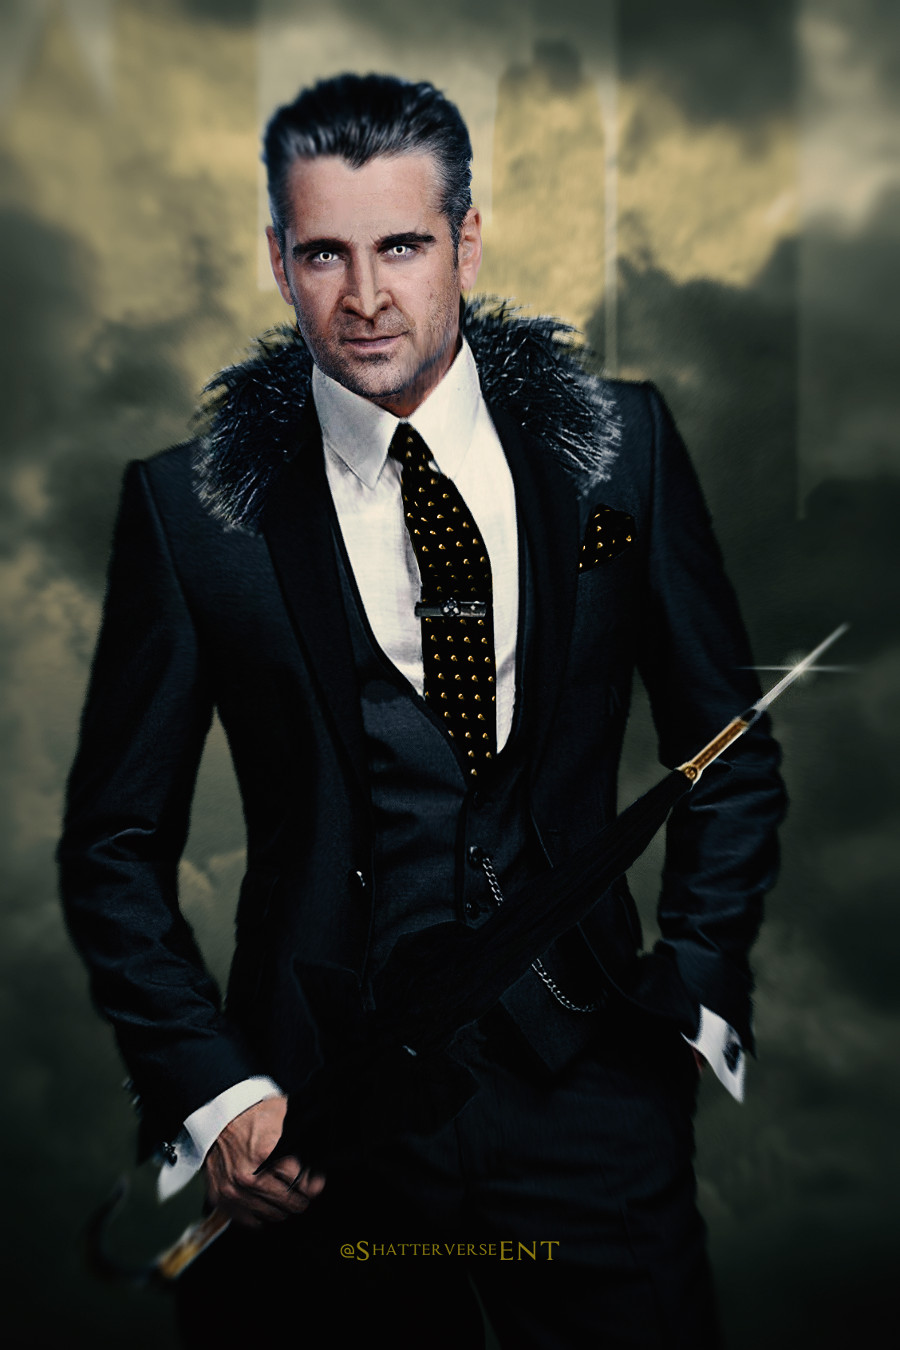 Colin Farrell Penguin Fan art Batman